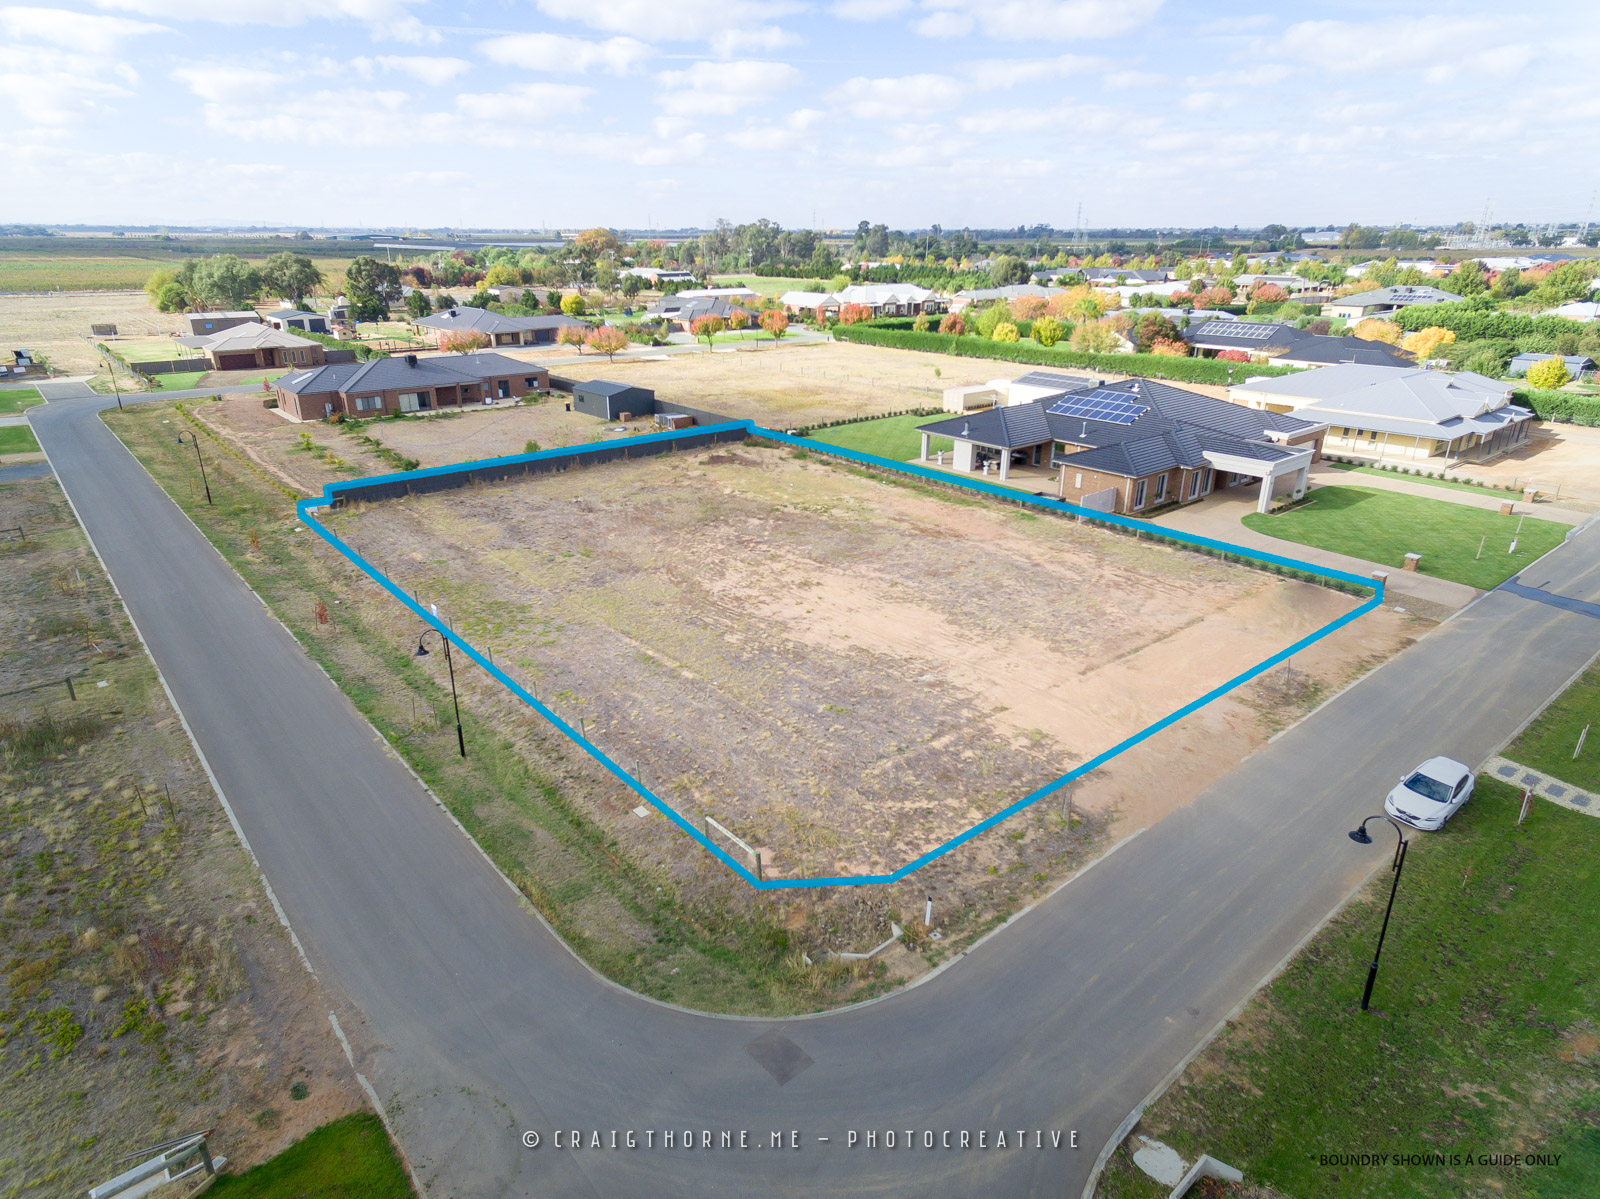 20180509-01-1-Girton-Crt-Shepparton-North-©CT-DJI_0520-BOUNDRY.jpg